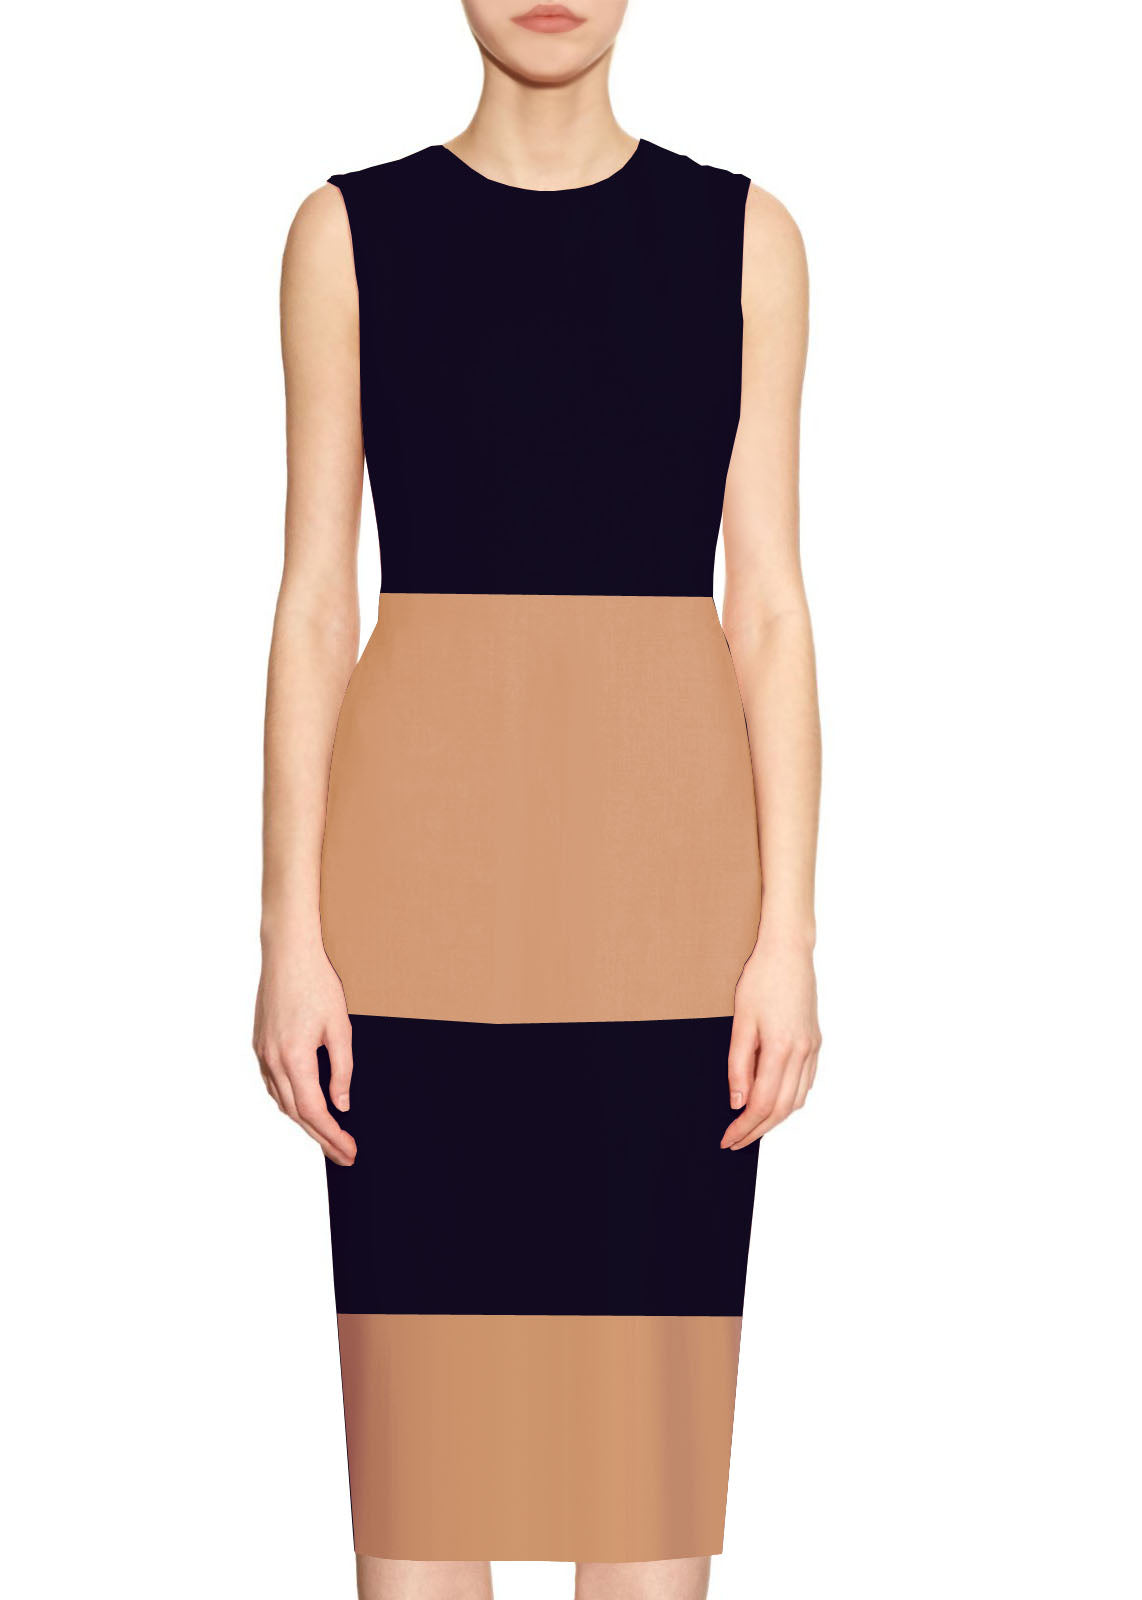 22f1f290 Sutton Two Toned Sheath Dress - Black and Camel – CaeliNYC